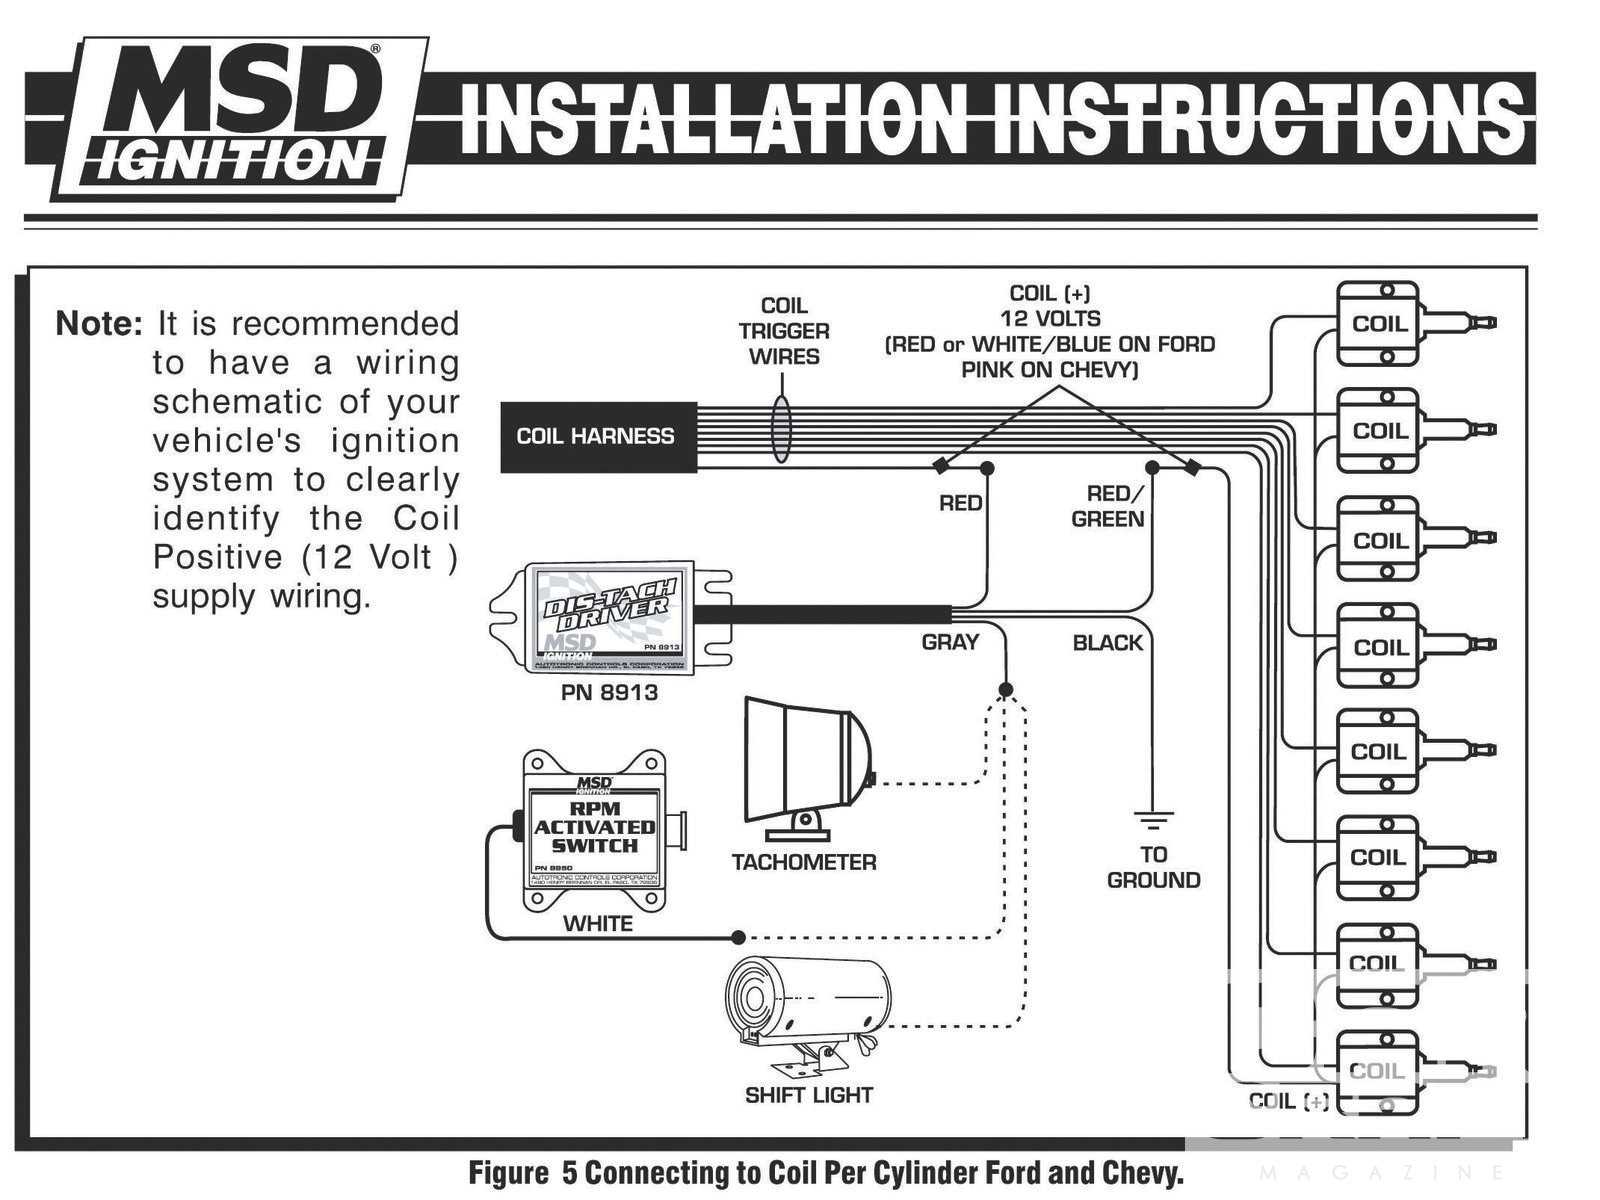 ccrp 1202 quick tech electronic ignition tach install 003?resize=665%2C499 autometer c2 tach wiring diagram wiring diagram autometer c2 tach wiring diagram at mifinder.co